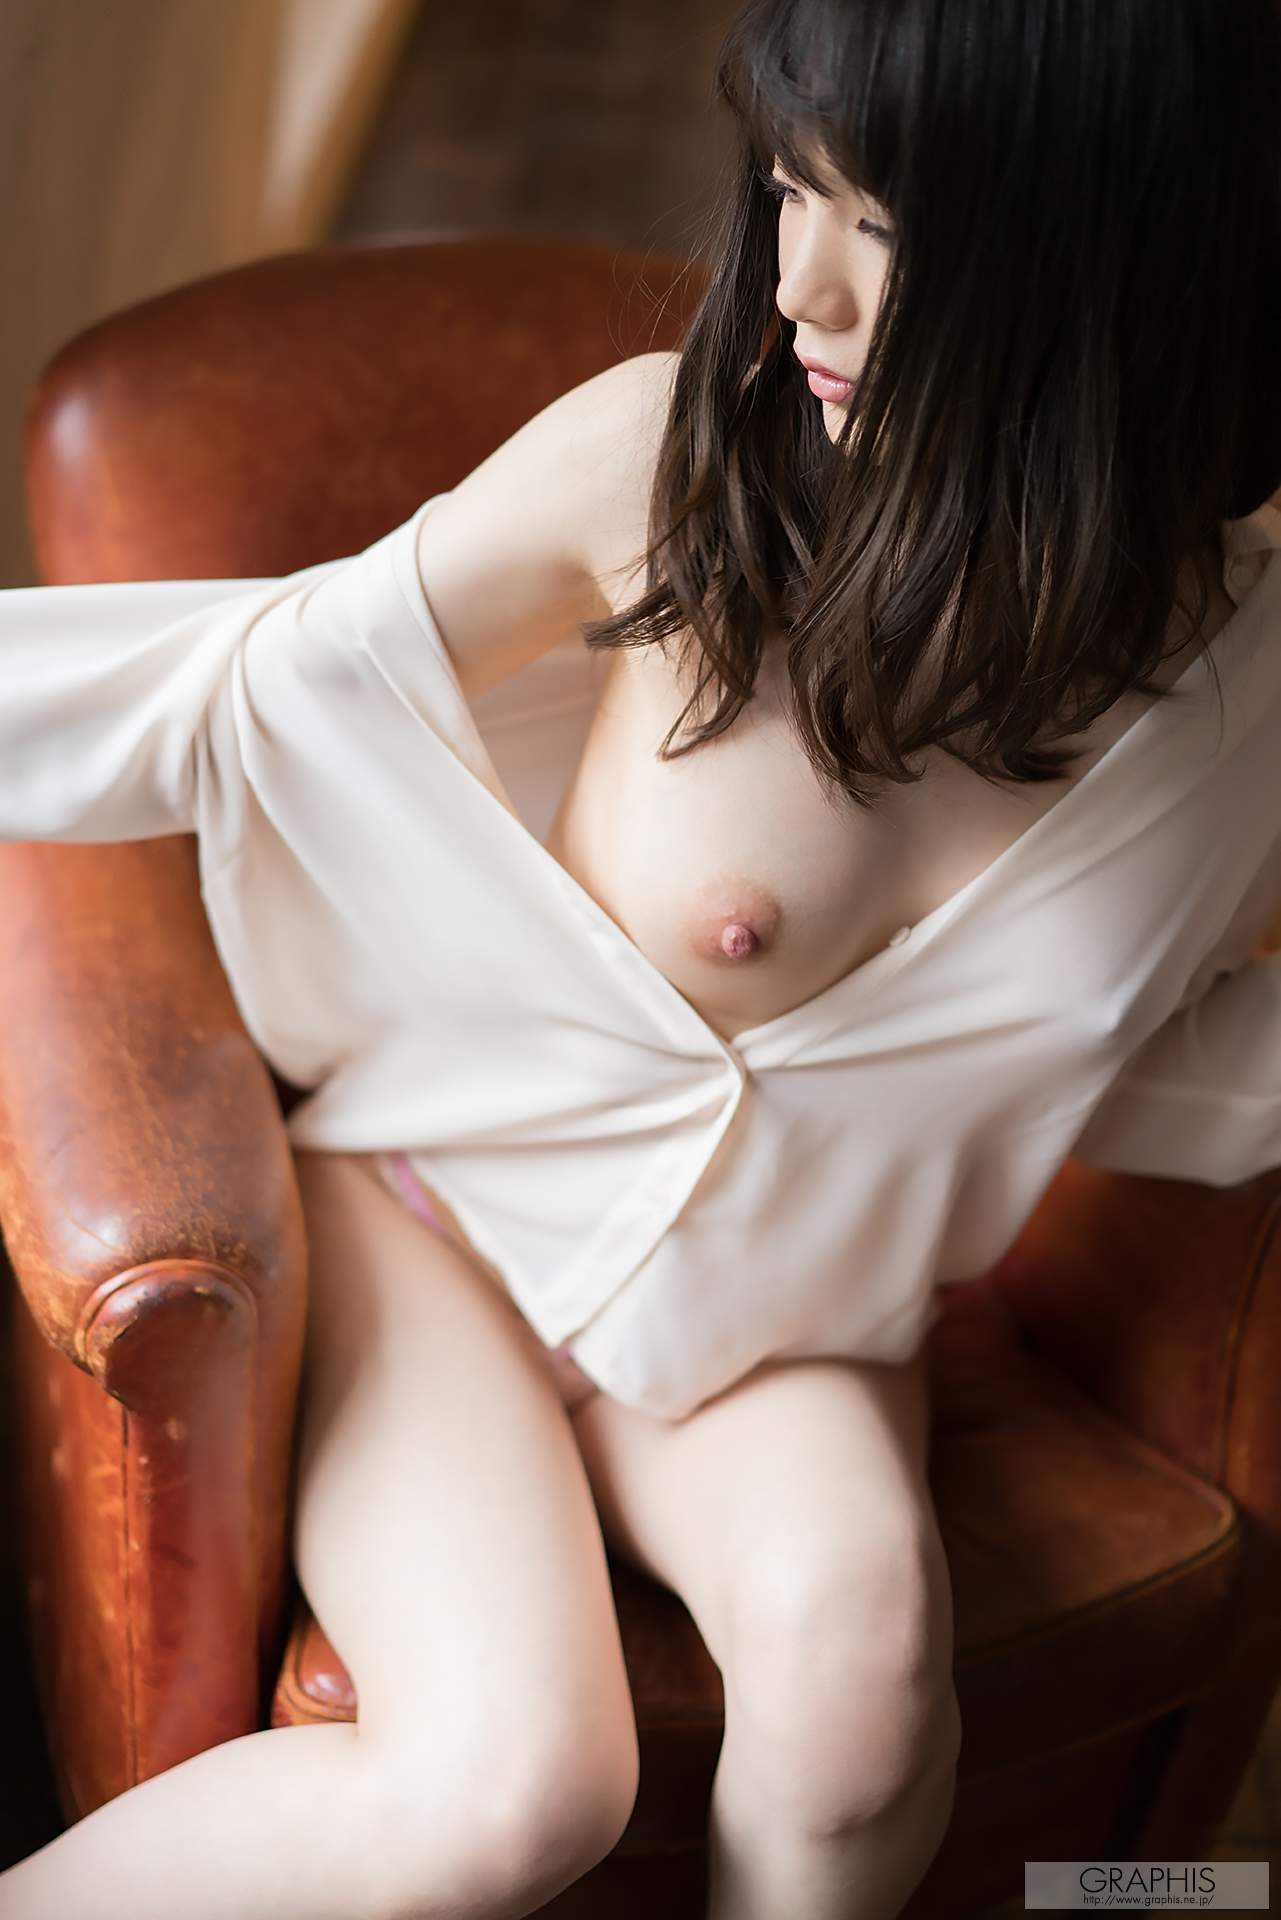 Airi Suzumura 鈴村あいり [Sexually Attractive]